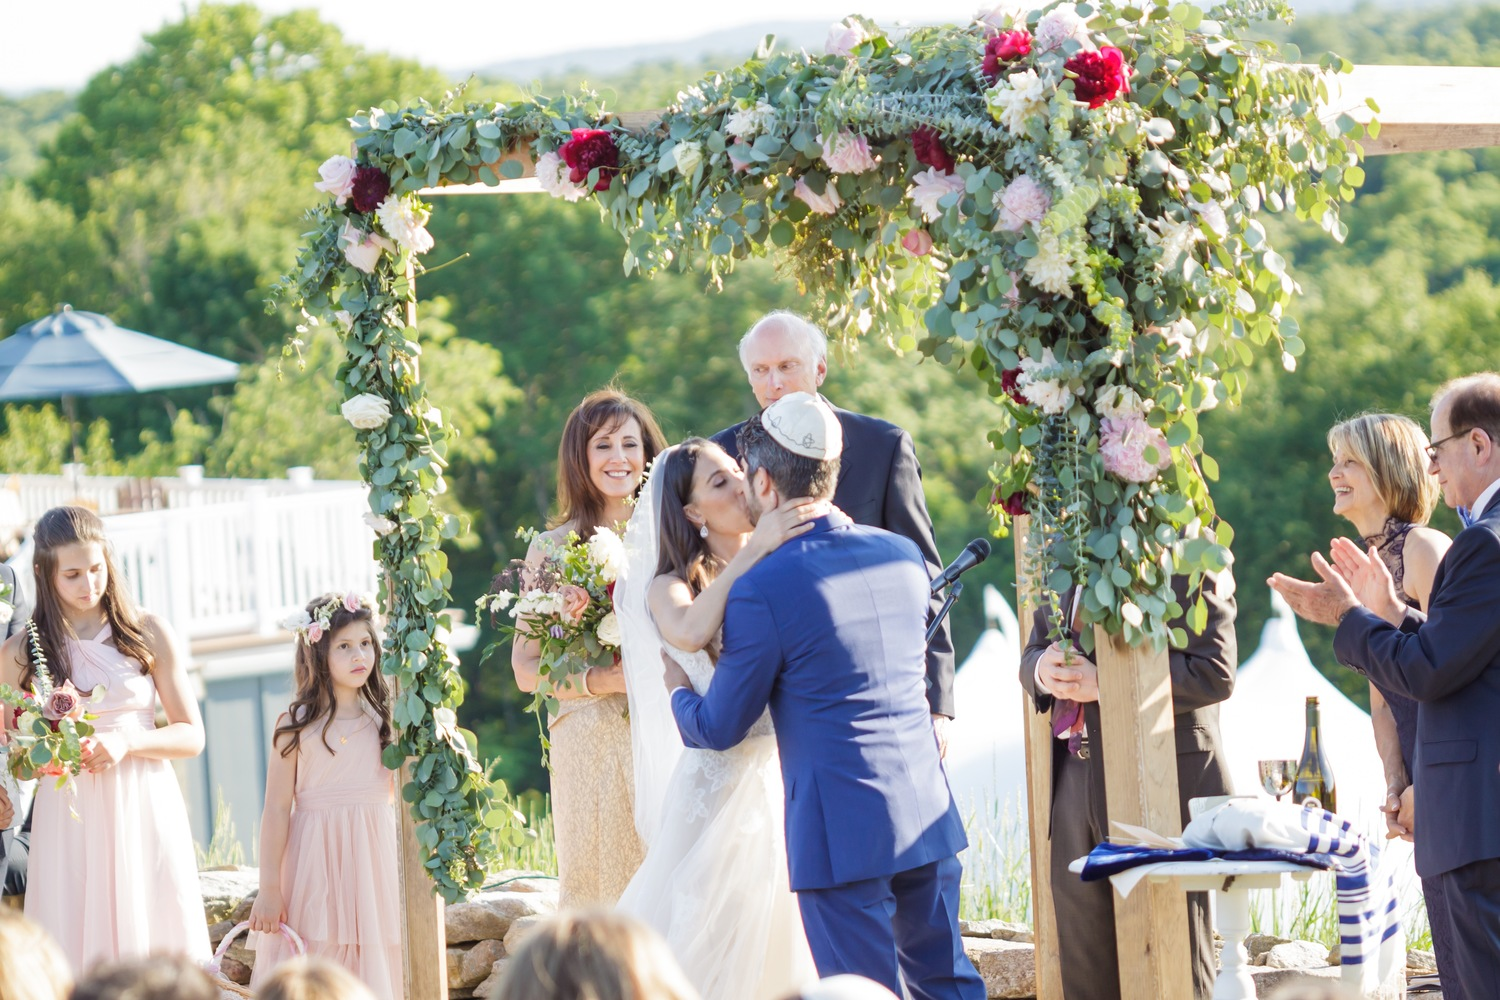 Preston Ridge Vineyard wedding ceremony chuppah arbor floral pink maroon greens eucalyptus.jpg